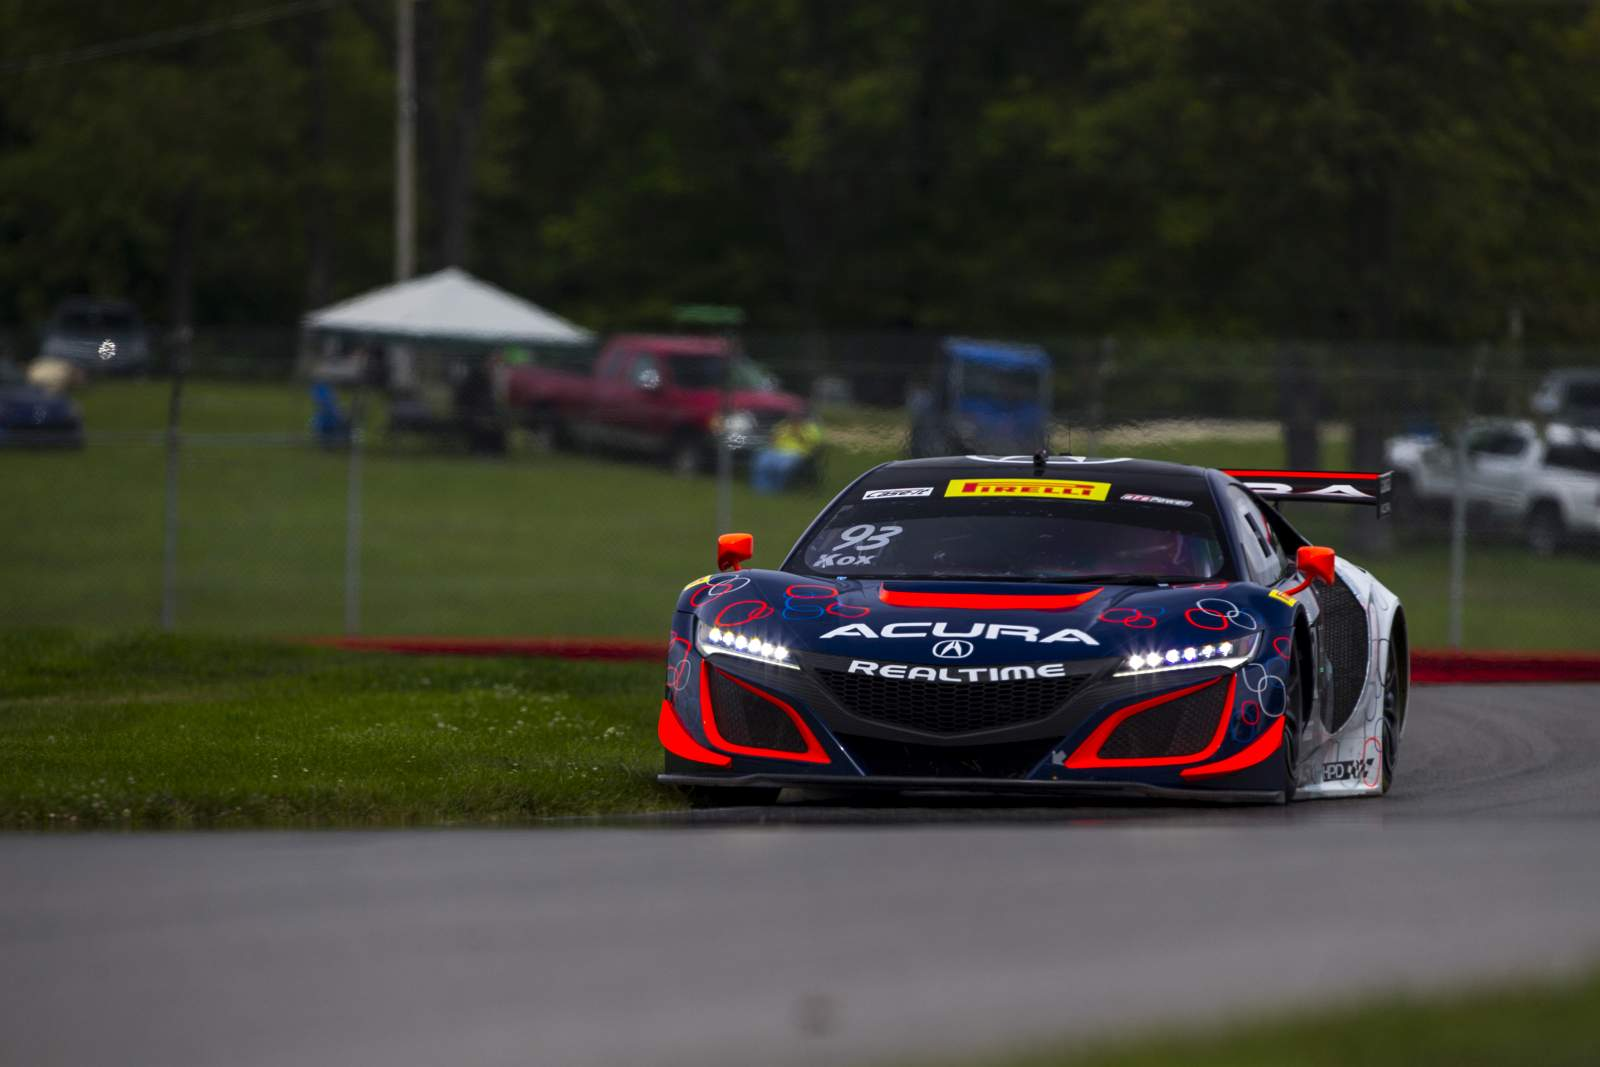 peter-kox-realtime-racing-pirelli-world-challenge-mid-ohio-04